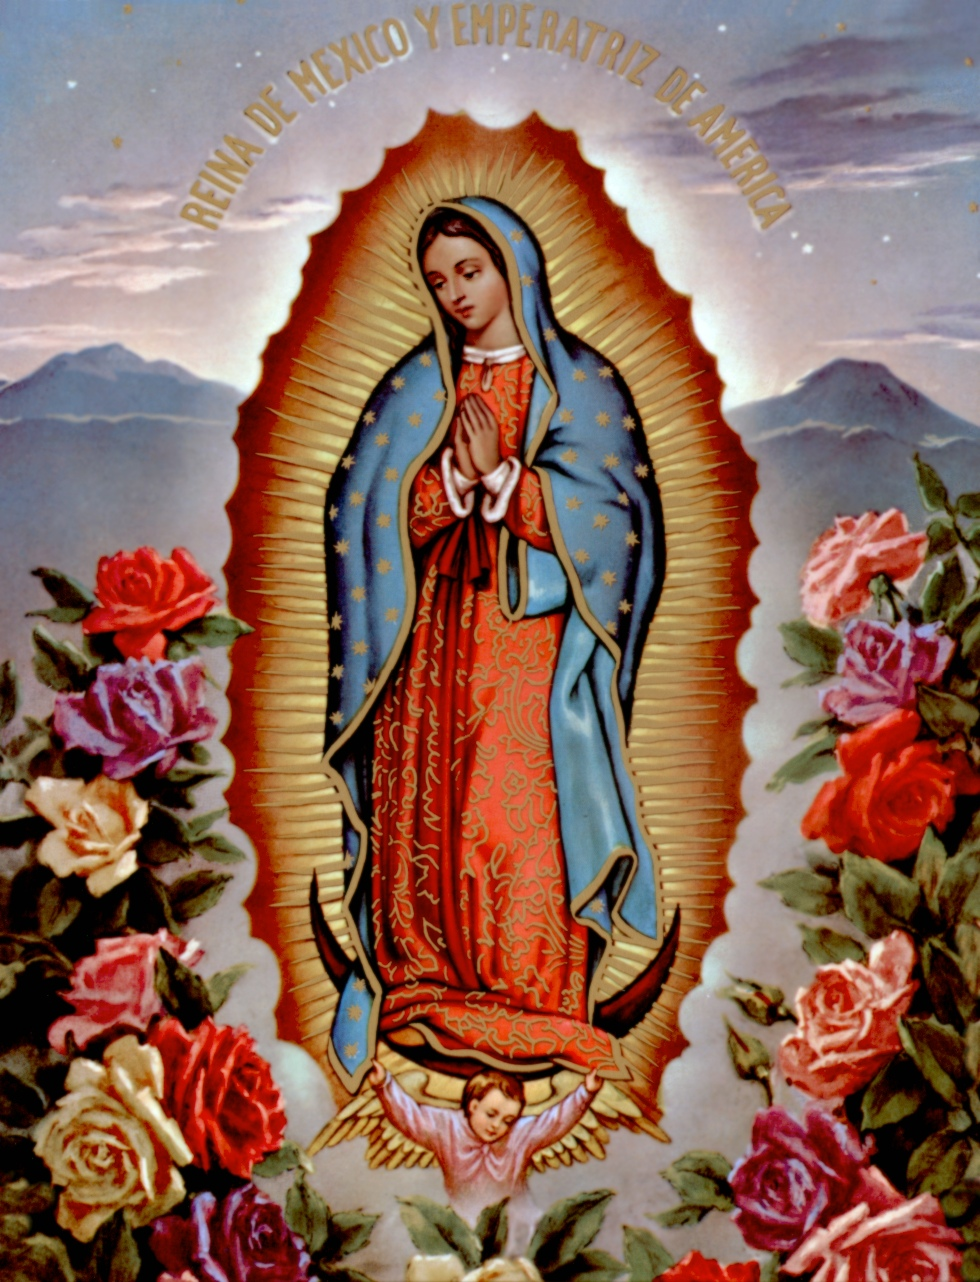 The Evolution of La Virgen de Guadalupe in Chicano Art